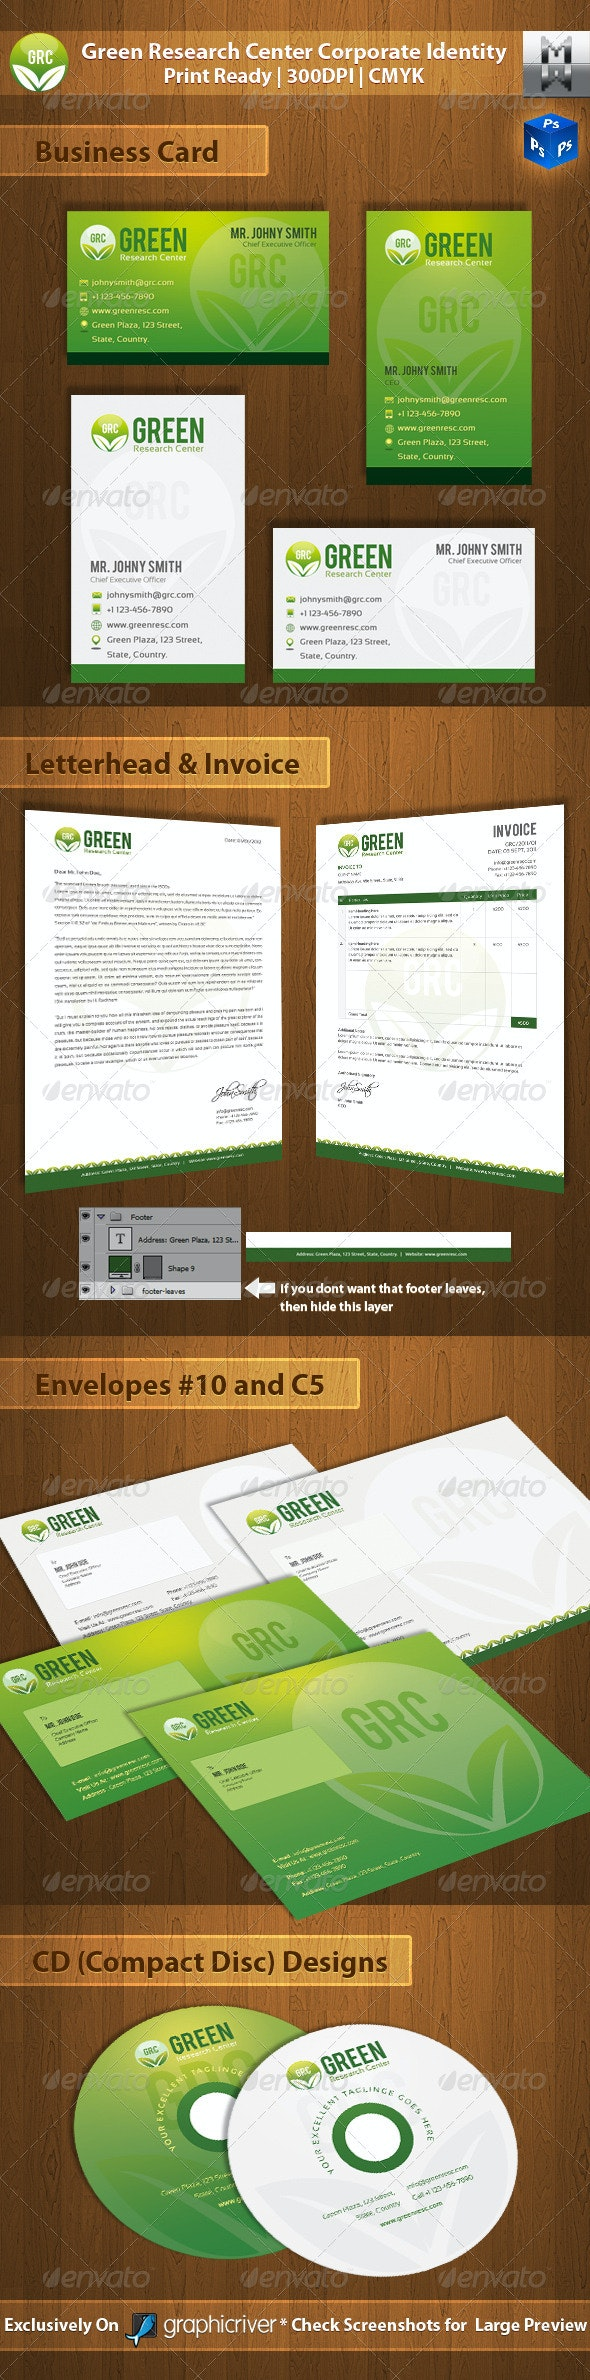 Green Research Center Corporate Identity - Stationery Print Templates